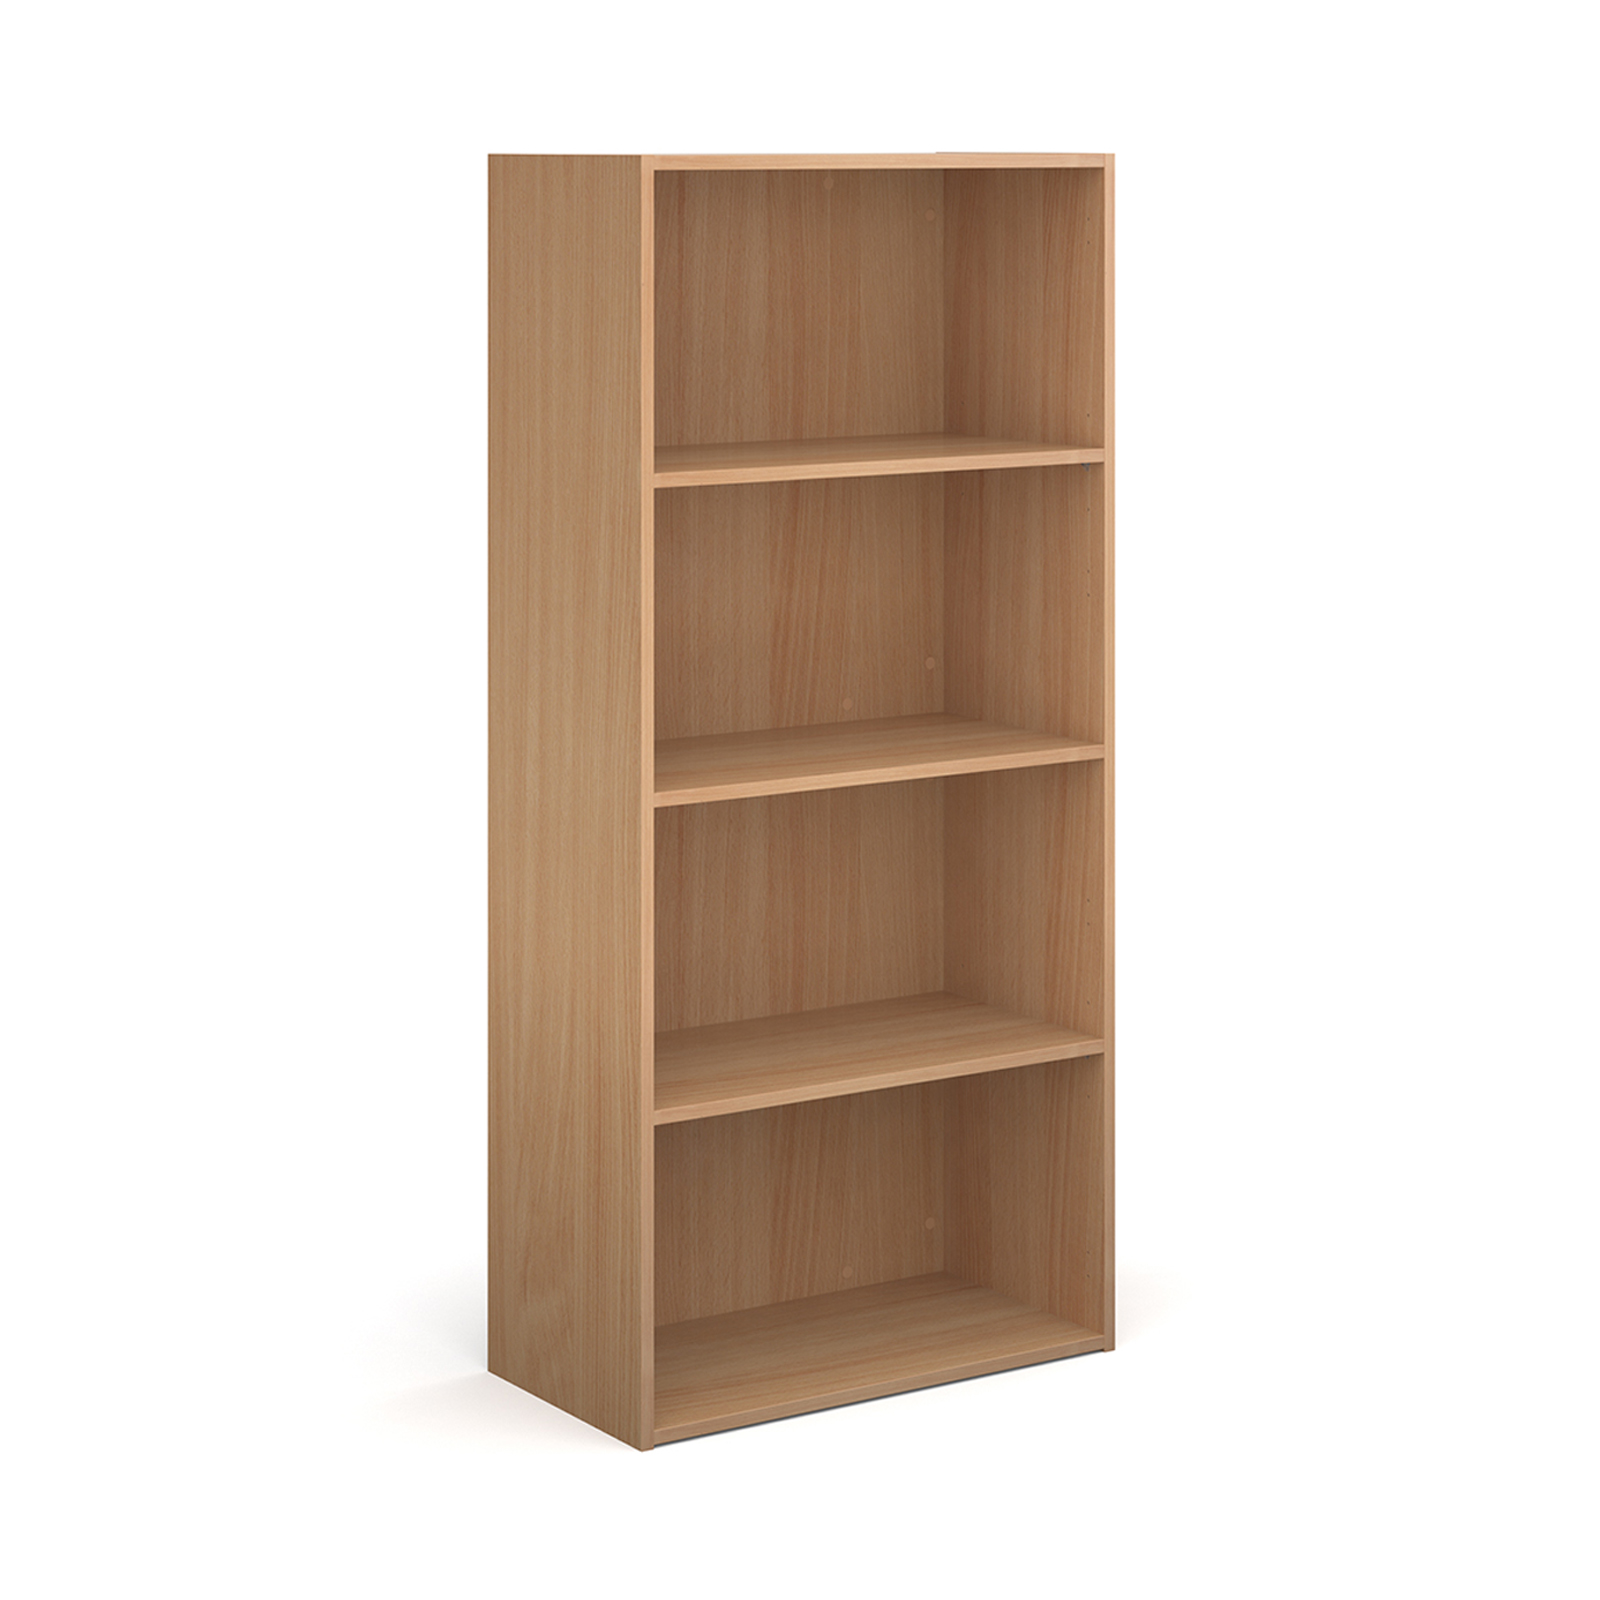 Contract bookcase 1630mm high with 3 shelves - beech